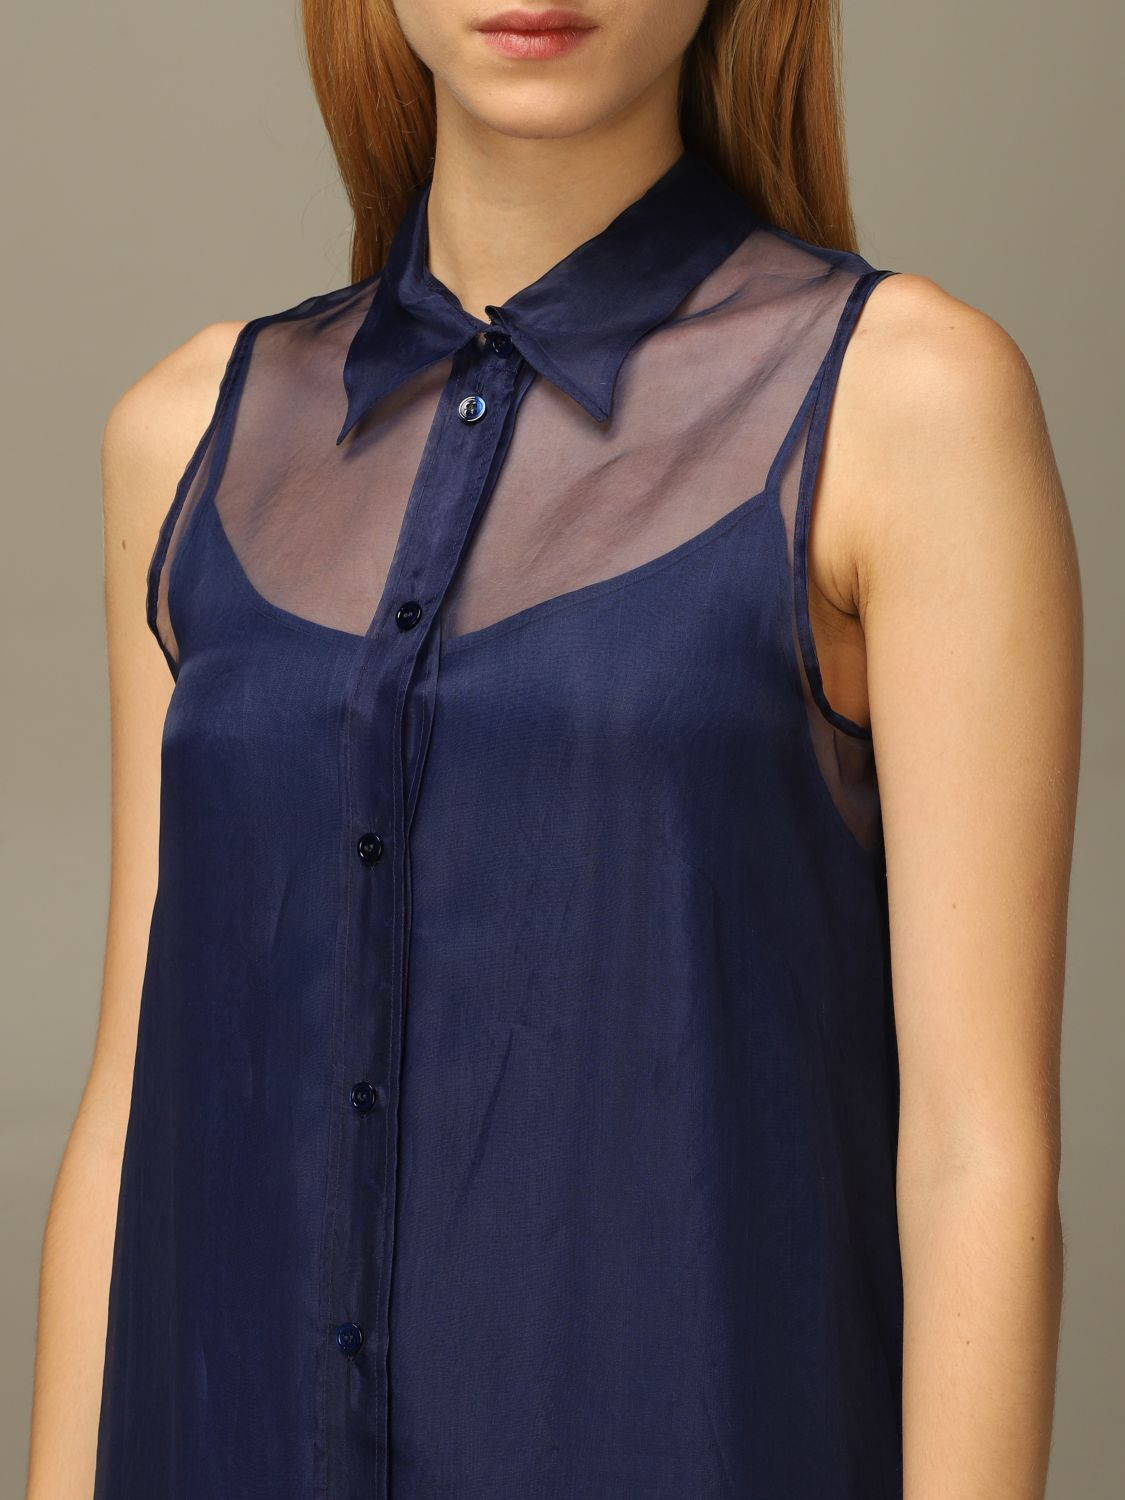 Abito European Culture: Abito European Culture lungo in tulle blue 3